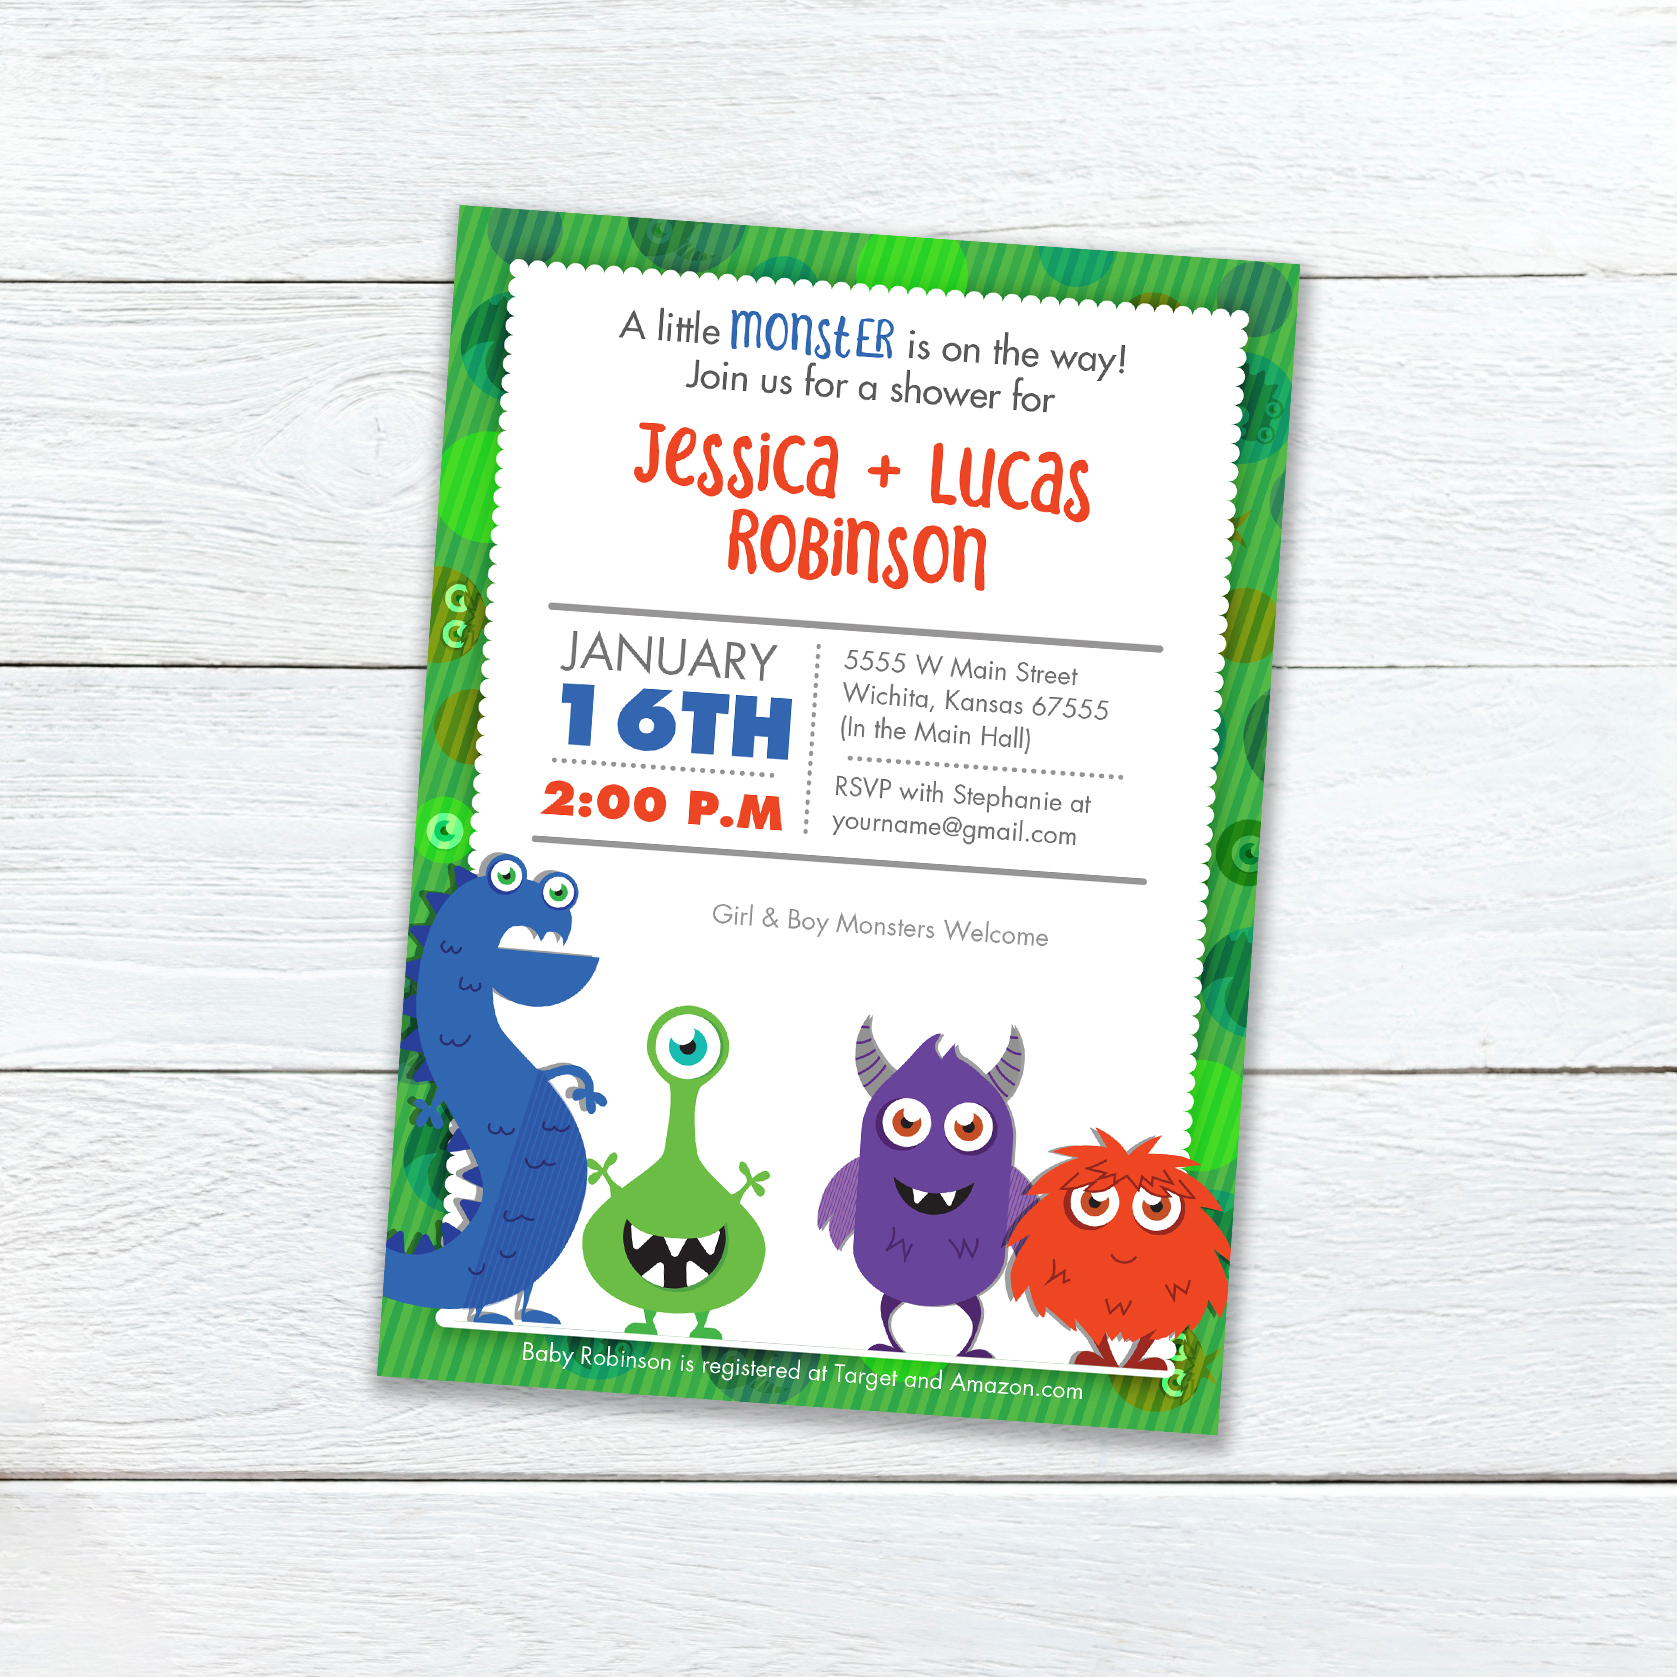 Do you want a baby shower that is just a little more fun - this monster themed shower card is a great boy or gender neutral way to celebrate your new monster's arrival